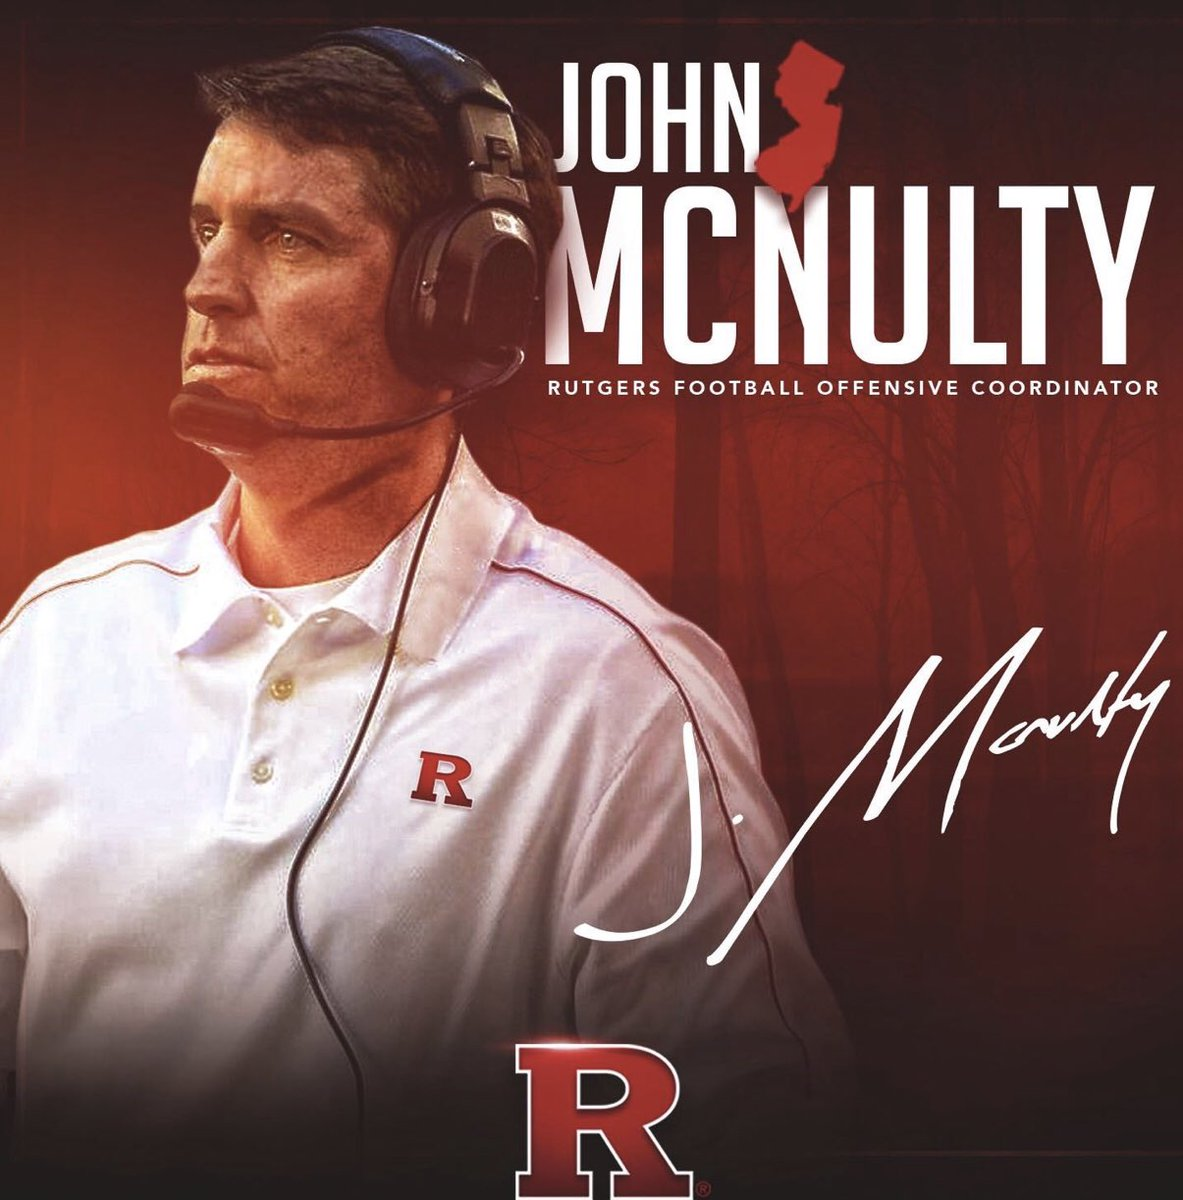 #Rutgers fans, @ScarletSpotRU podcast Episode 36 is a @RFootball preview with offensive coordinator John McNulty. John talks QBs, the 2019 offense, JoePa, Bo, Parcells, Coughlin, Schiano, etc.  And beat writers @KSargeantNJ and @JamesKratch.  Thursday 6am https://t.co/Hf5pUMxuBF https://t.co/fcRgdtcDq0